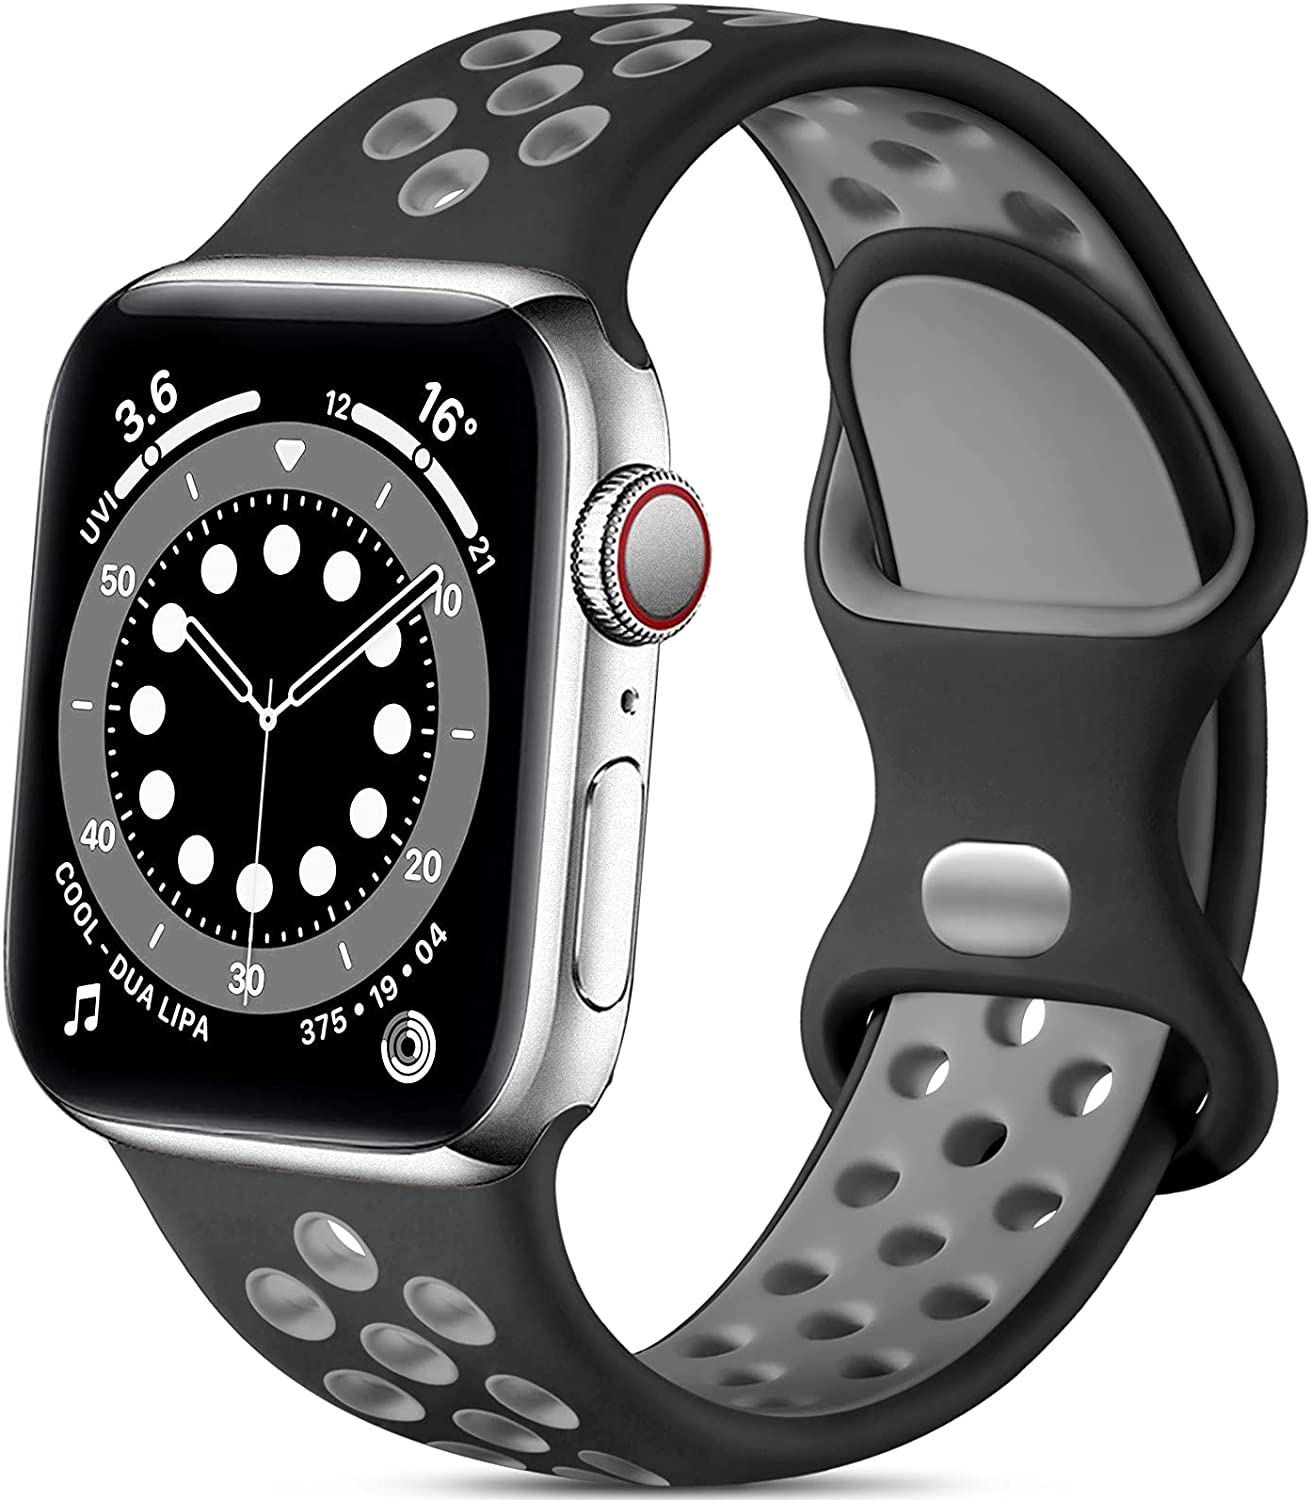 Lerobo Sport Bands Compatible with Apple Watch Band 44mm 42mm, Stylish Durable Breathable Soft Silicone Sport Replacement Strap Compatible for iWatch SE Series 6 5 4 3 2 1 Women Men, Black/Gray, M/L